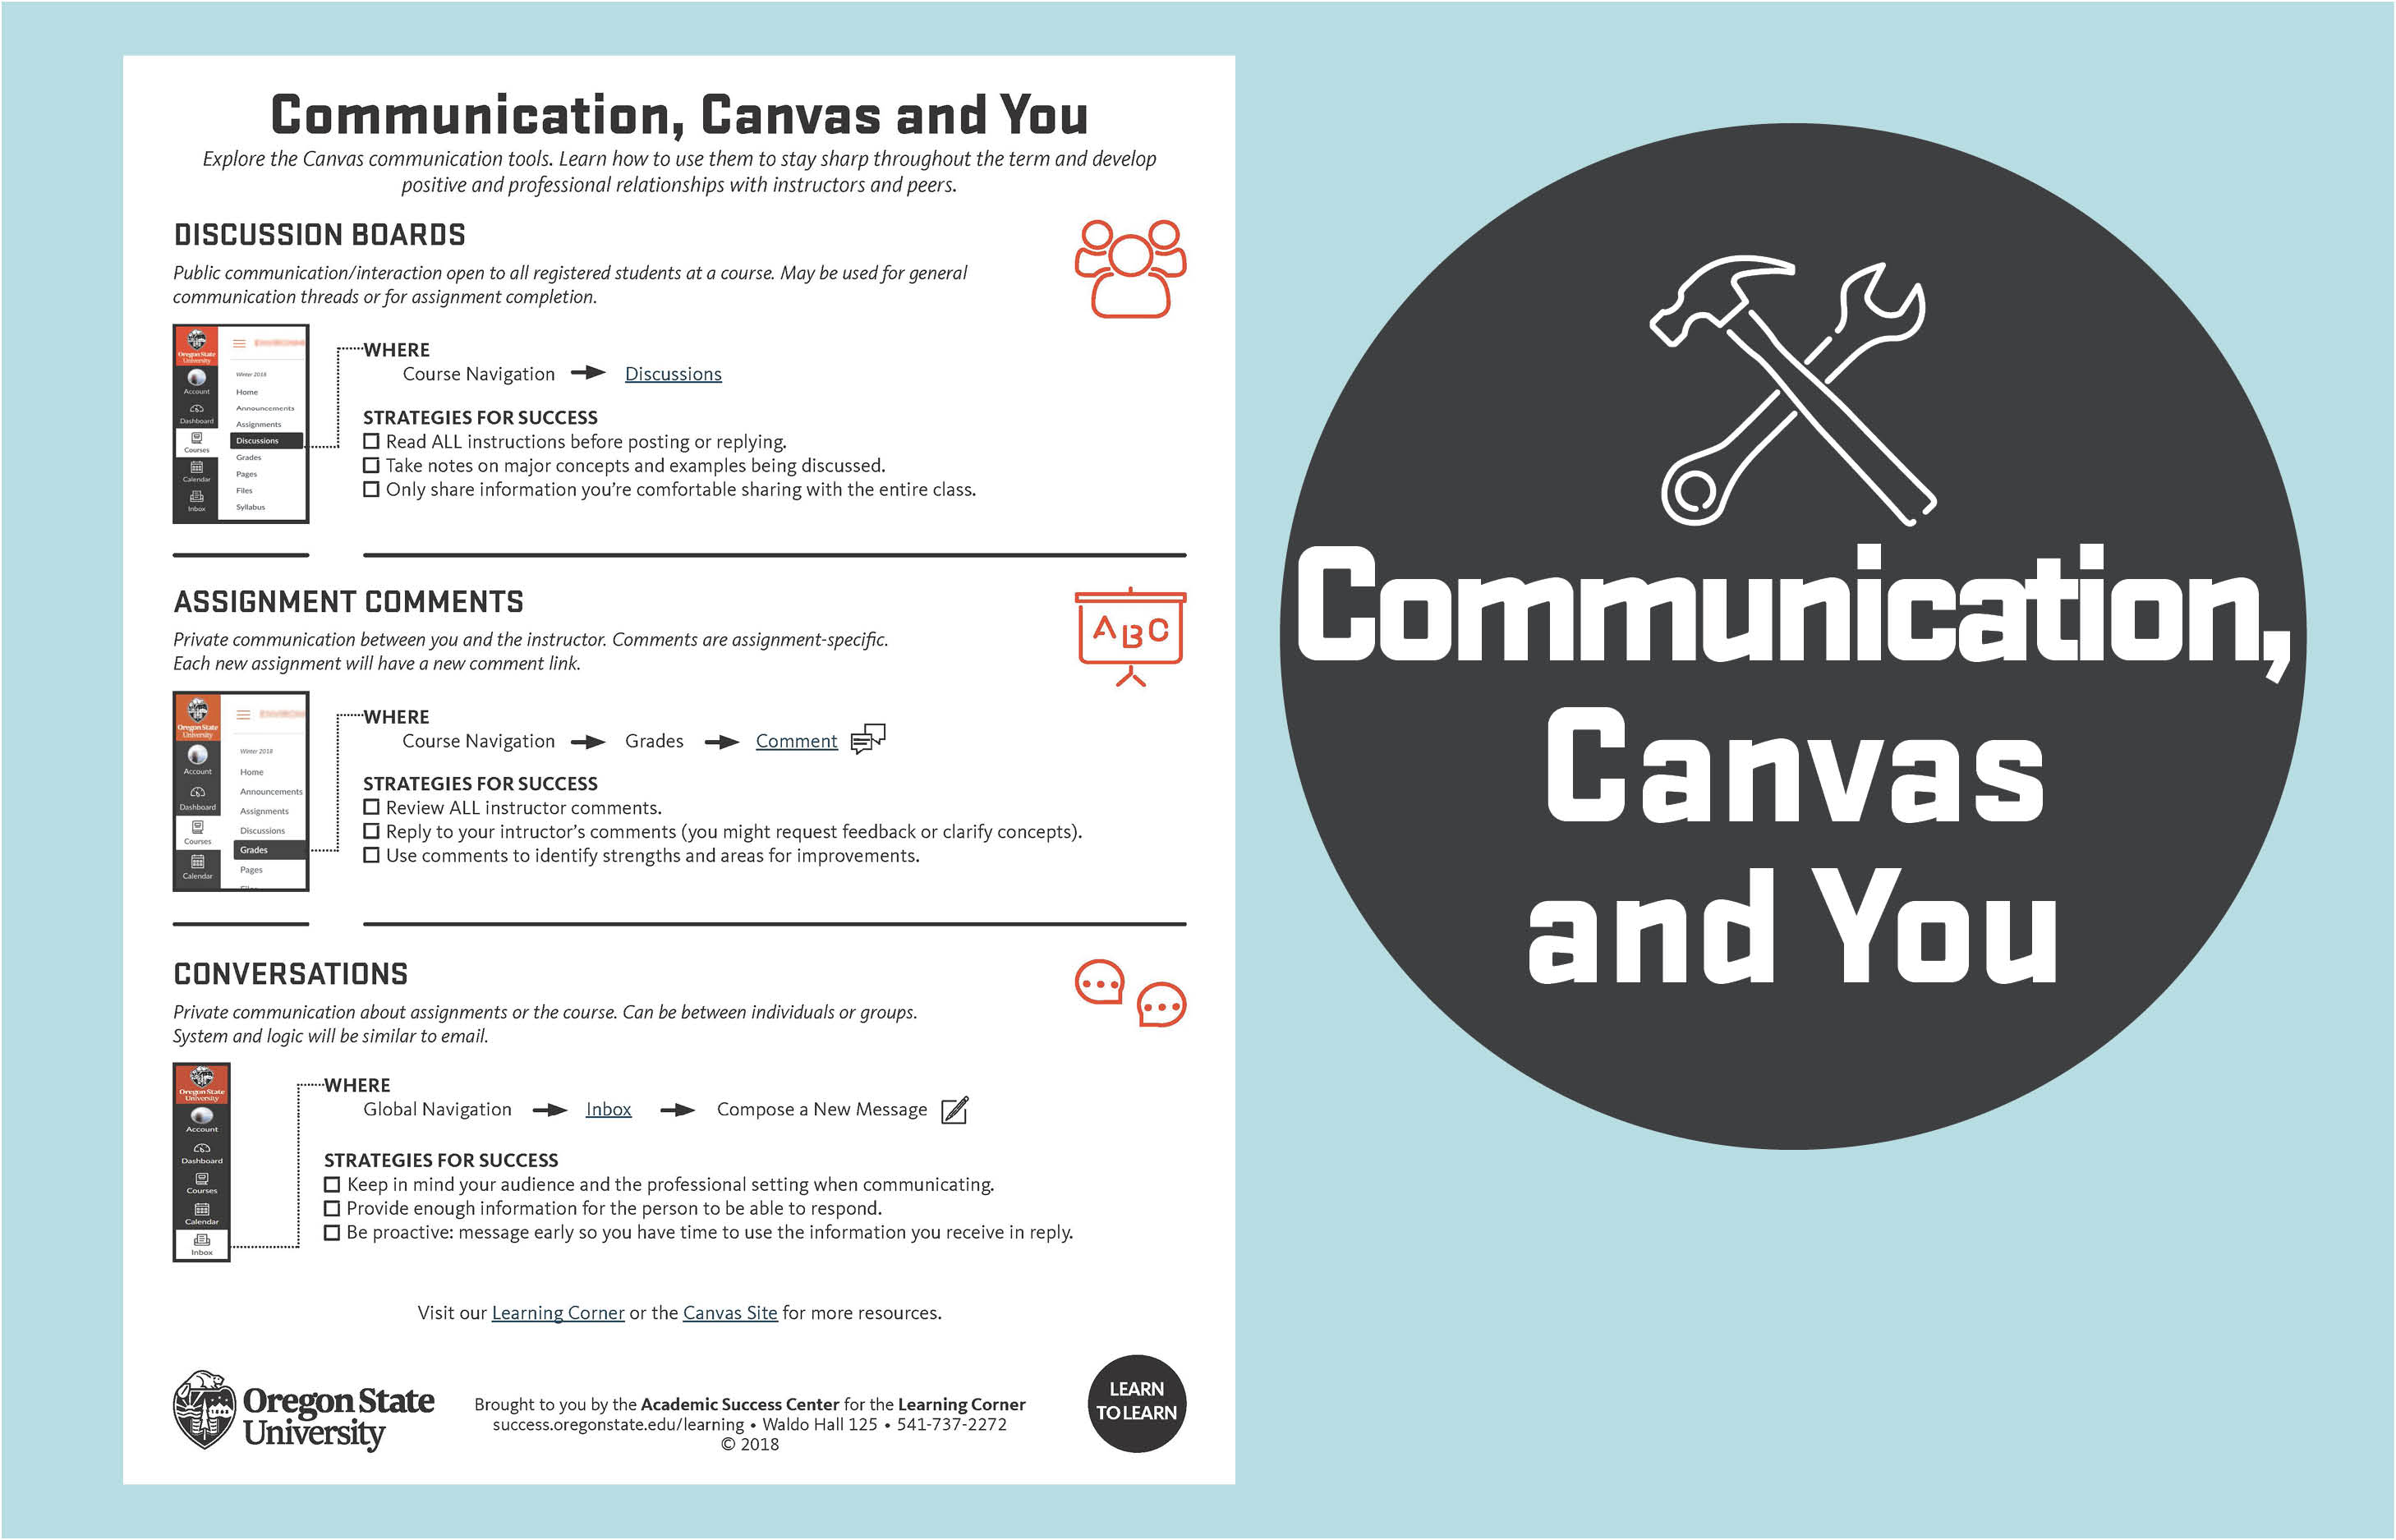 Communication, Canvas and You